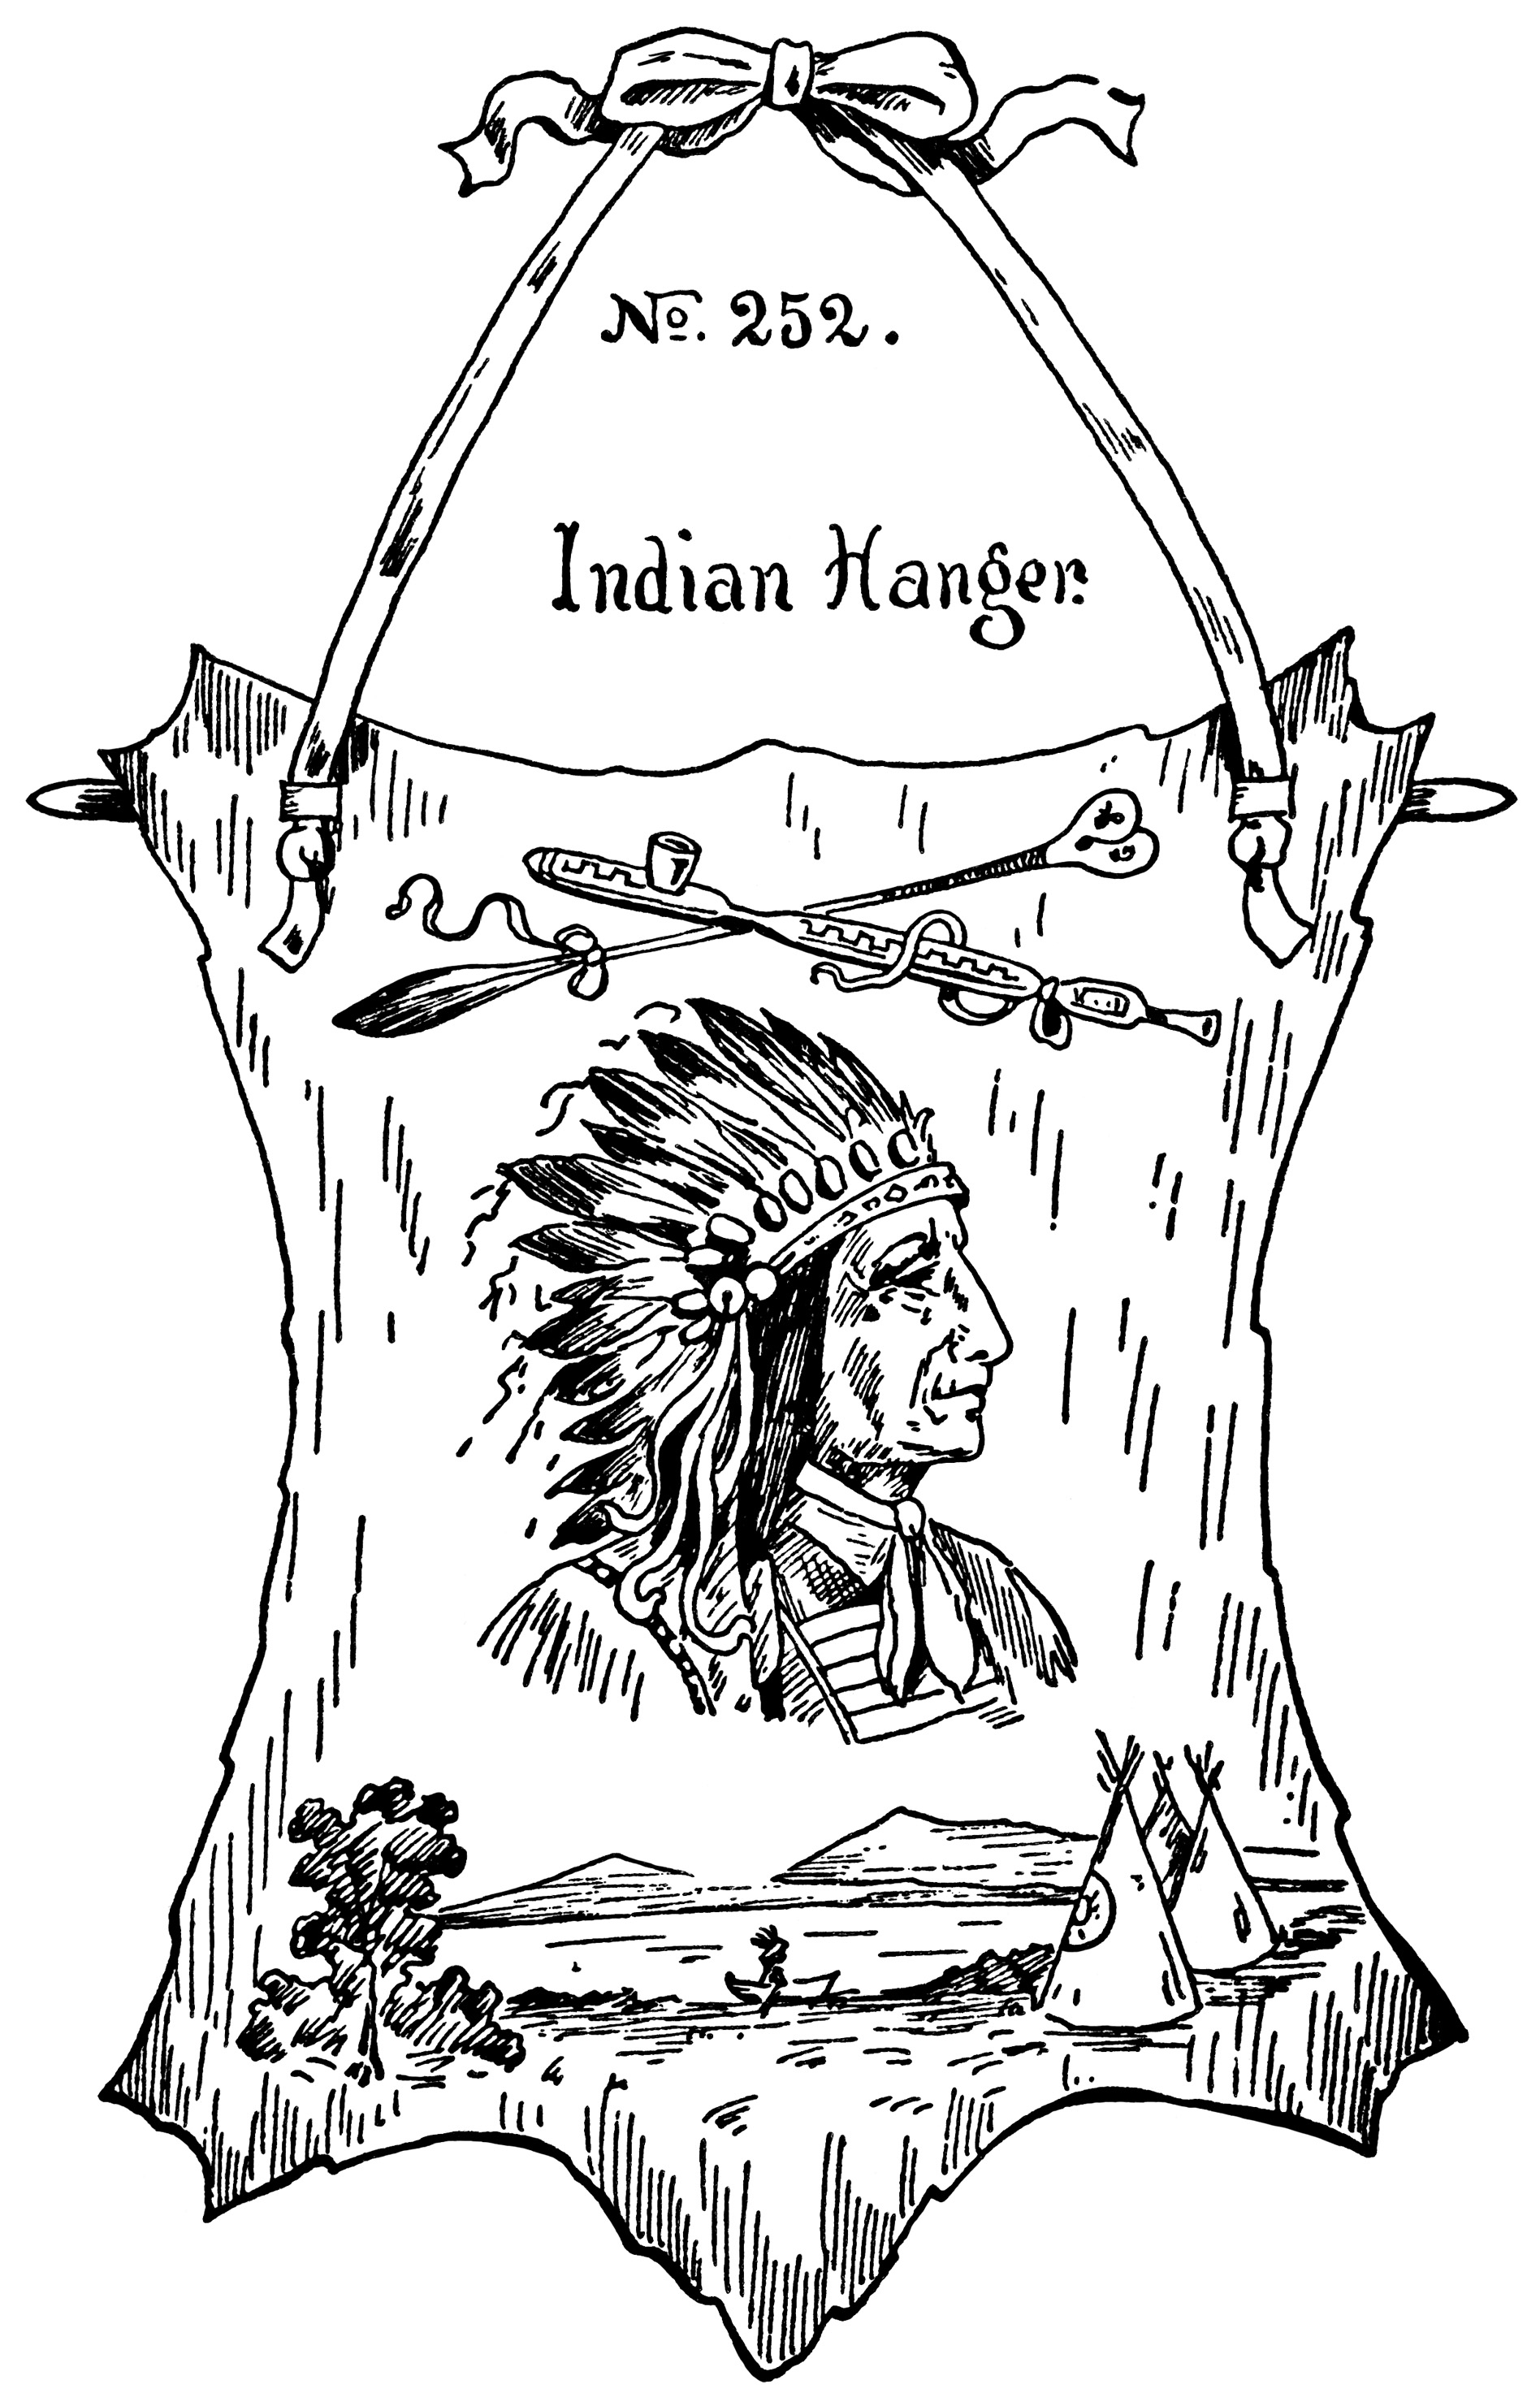 Indian Chief Free Vintage Clip Art